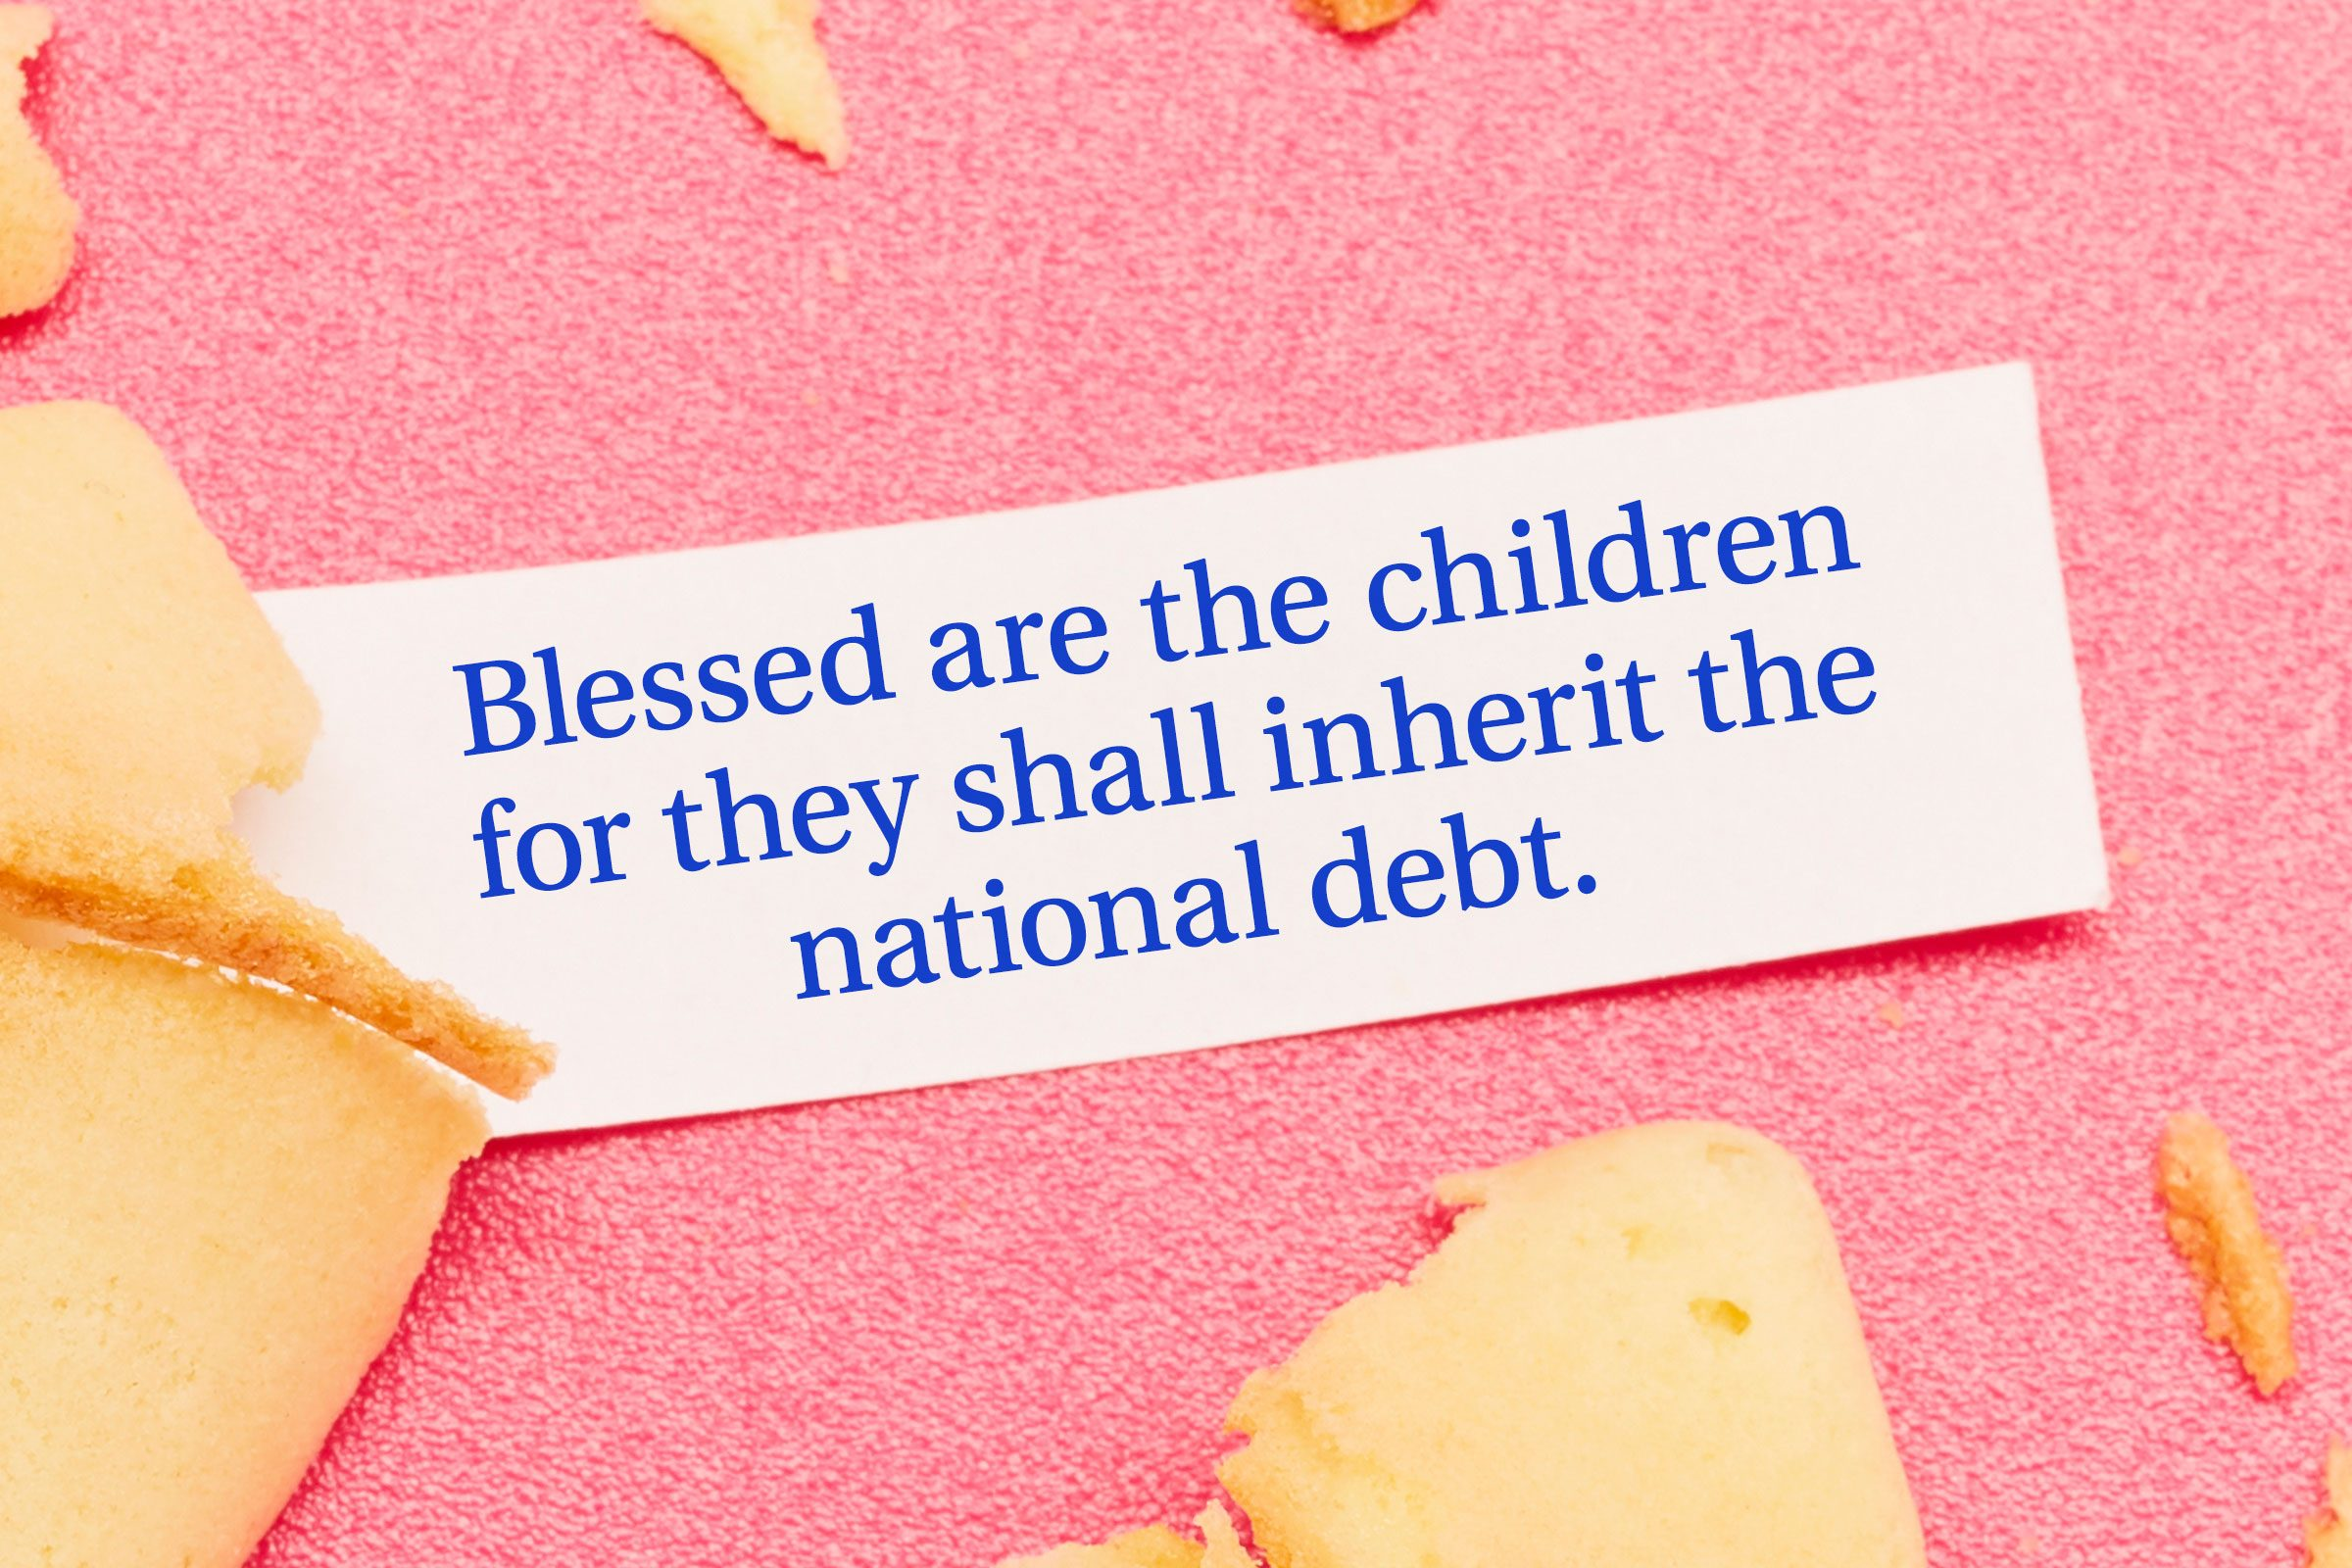 For image: Blessed are the children for they shall inherit the national debt.